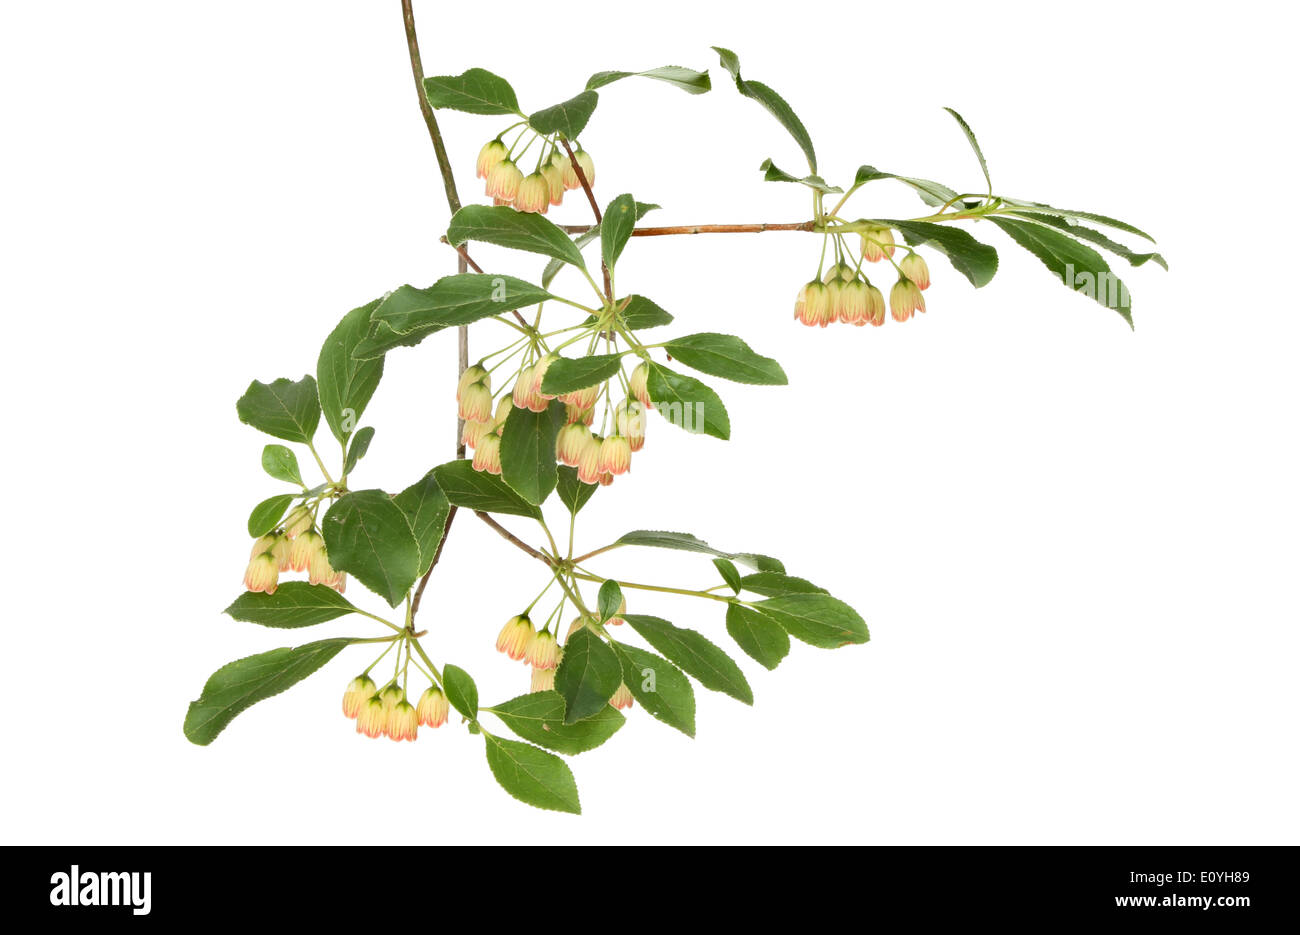 Small Bell Shaped Creamy White Flowers And Foliage Of An Enkianthus